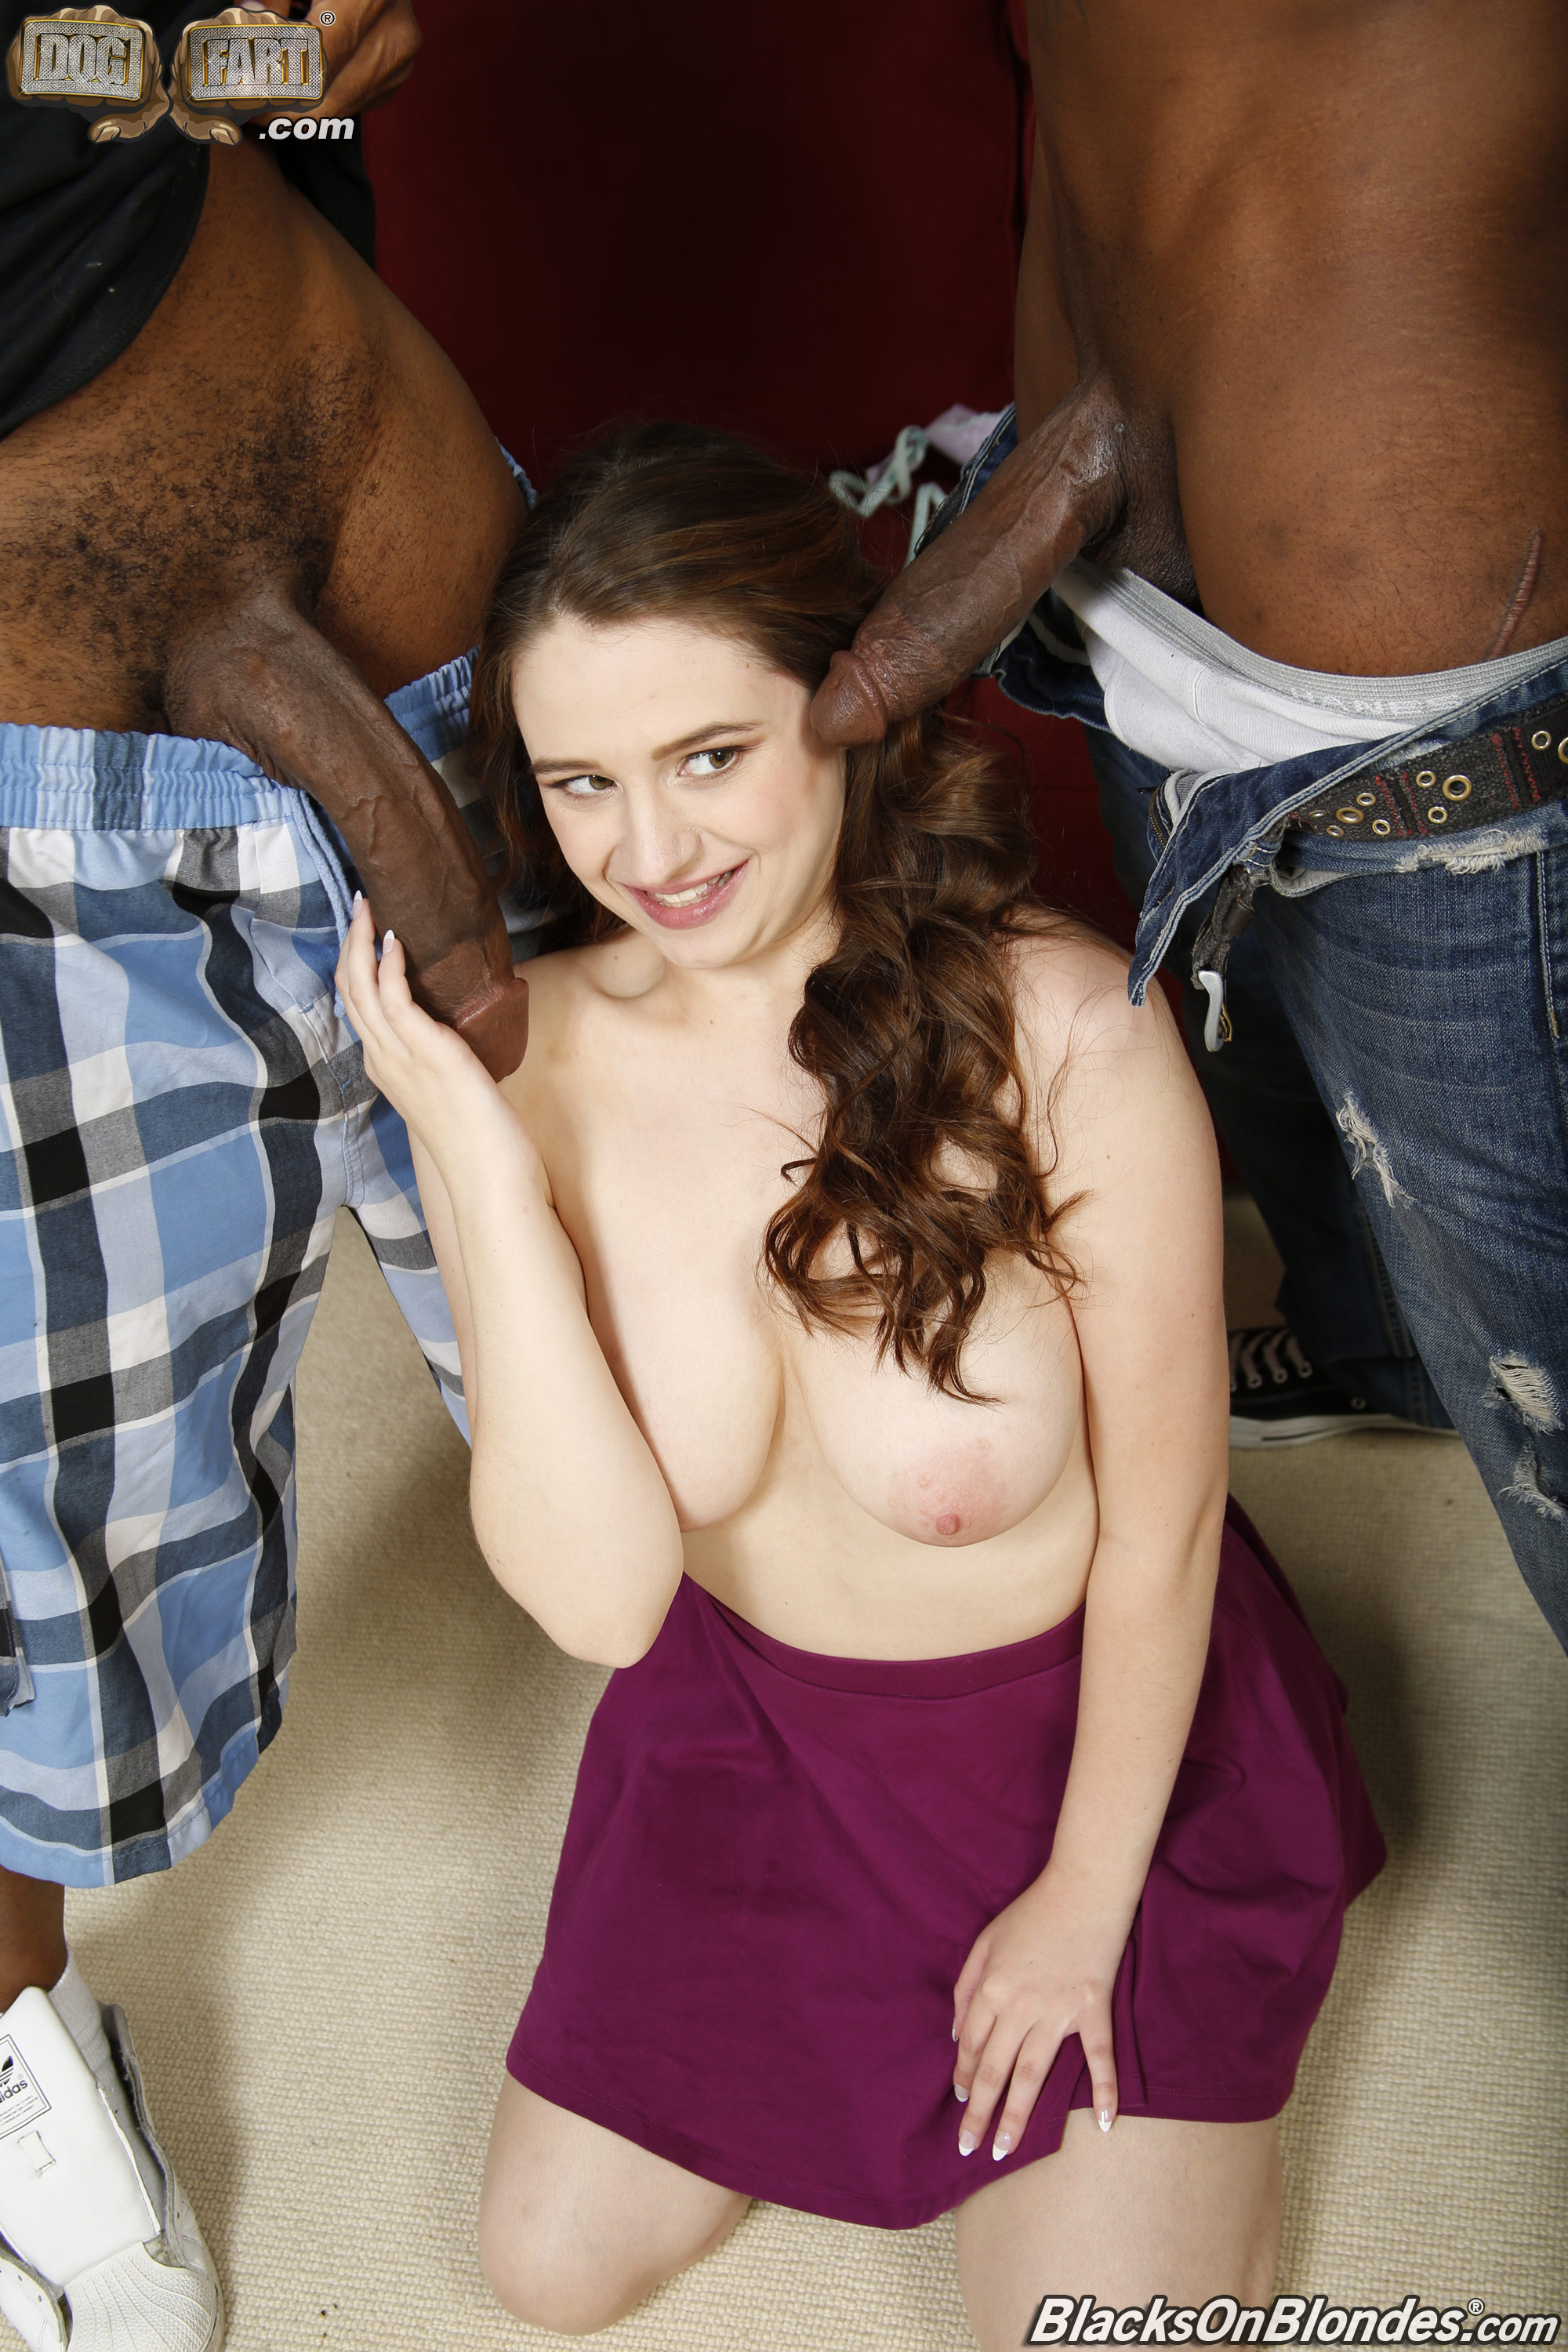 Hootttt index of galleries interracial